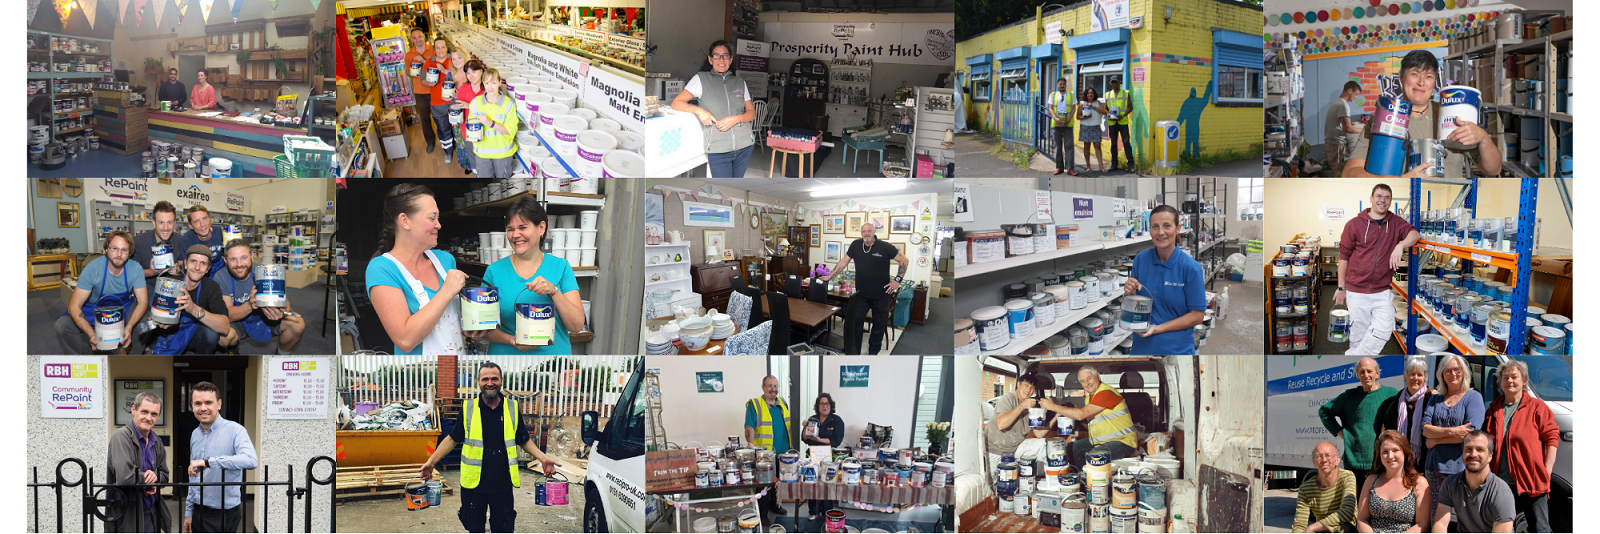 A collage of fifteen photos of staff members working at different Community RePaint schemes. In some photos staff members are holding paint containers, in other photos they stand next to their paint displays.